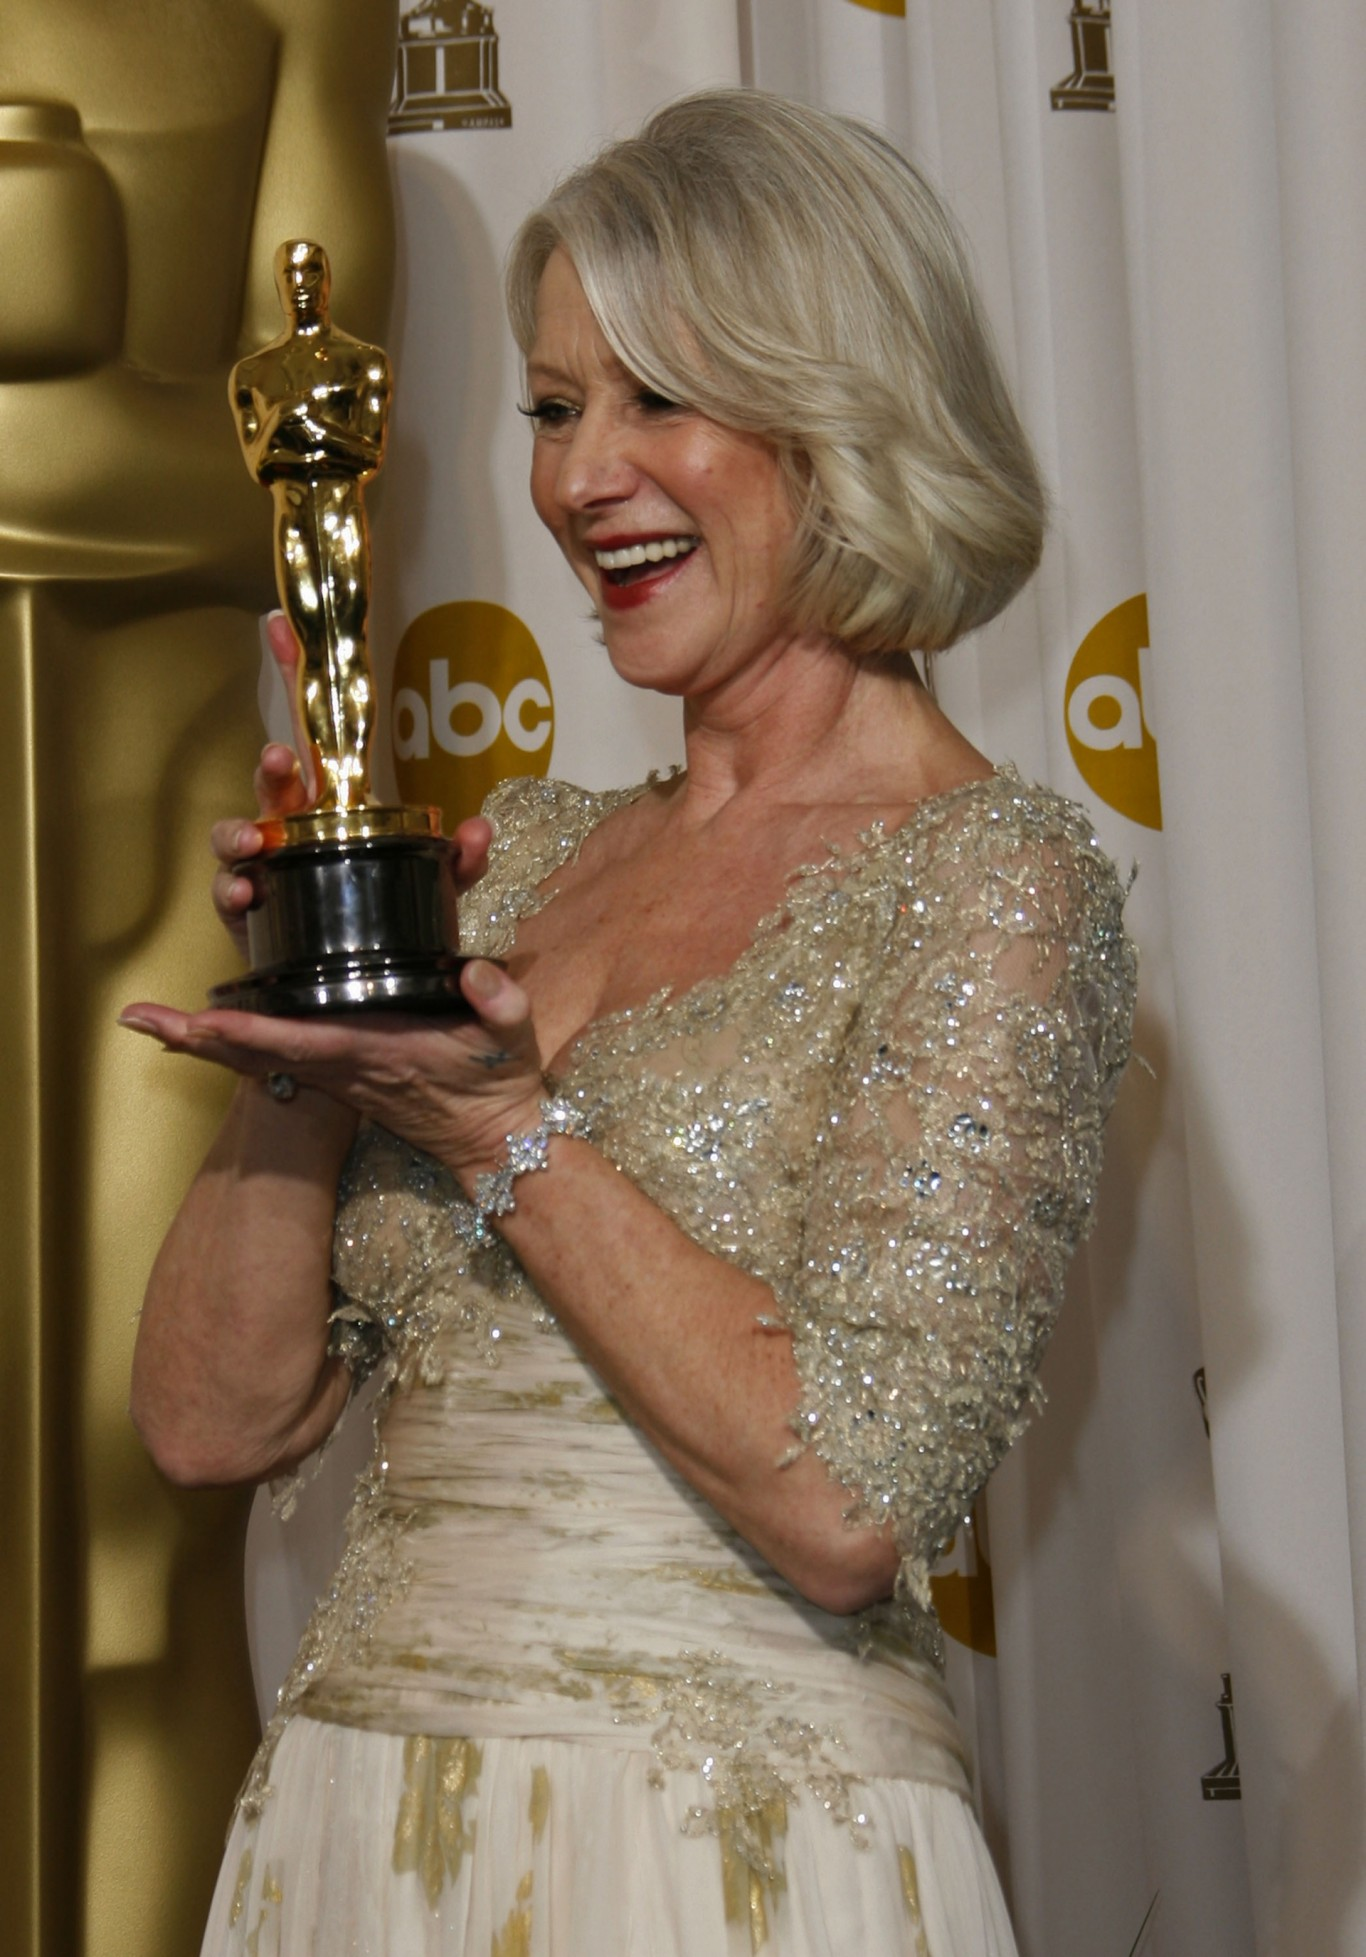 Helen Mirren with her Best Actress Oscar for The Queen